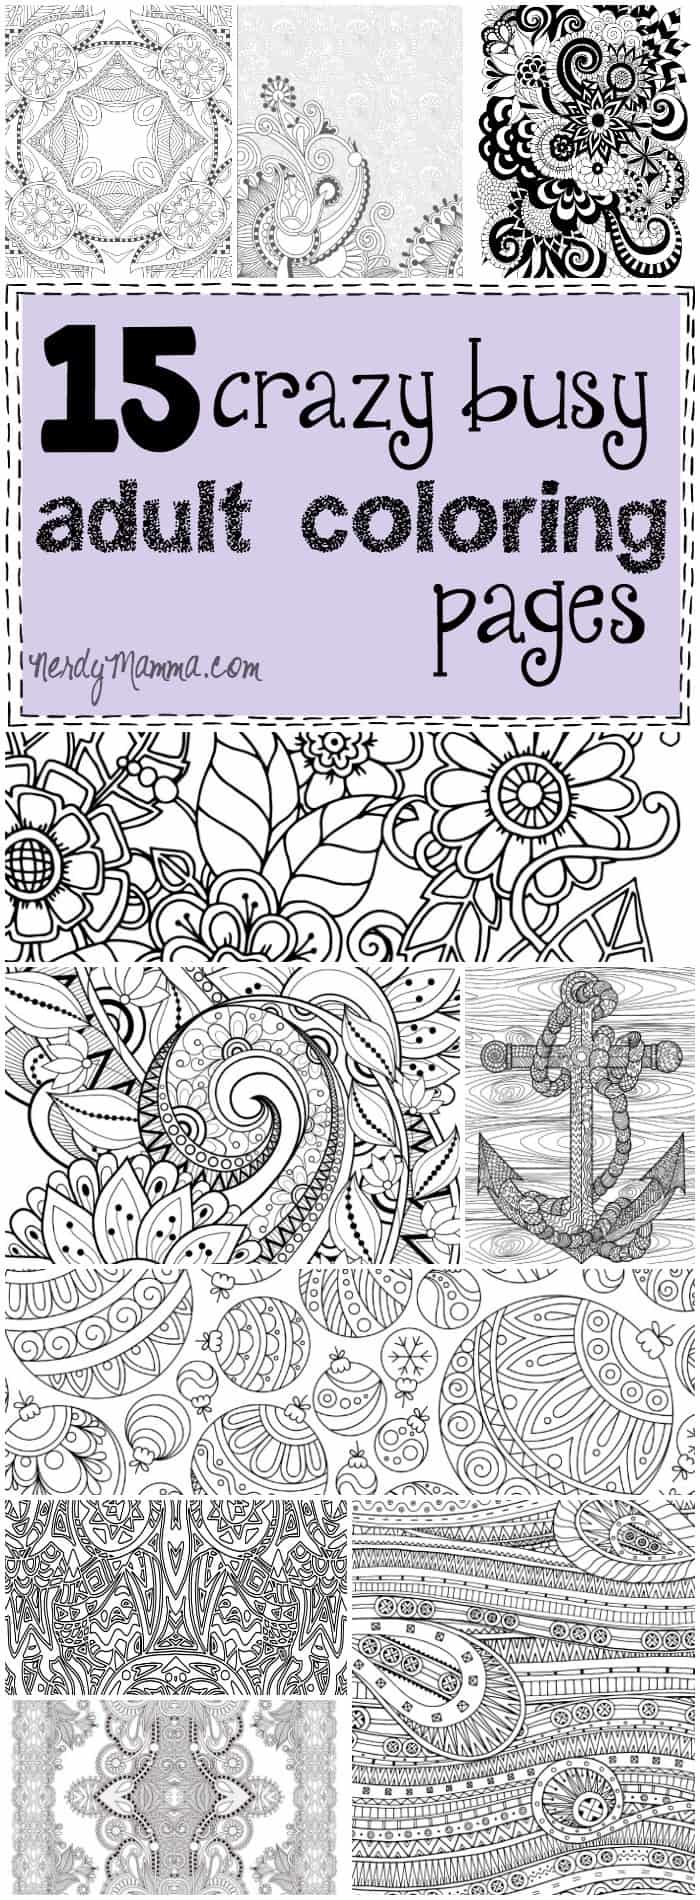 Ordinaire These 15 Crazy Busy Adult Coloring Pages Are So Awesome. I Love Coloring!